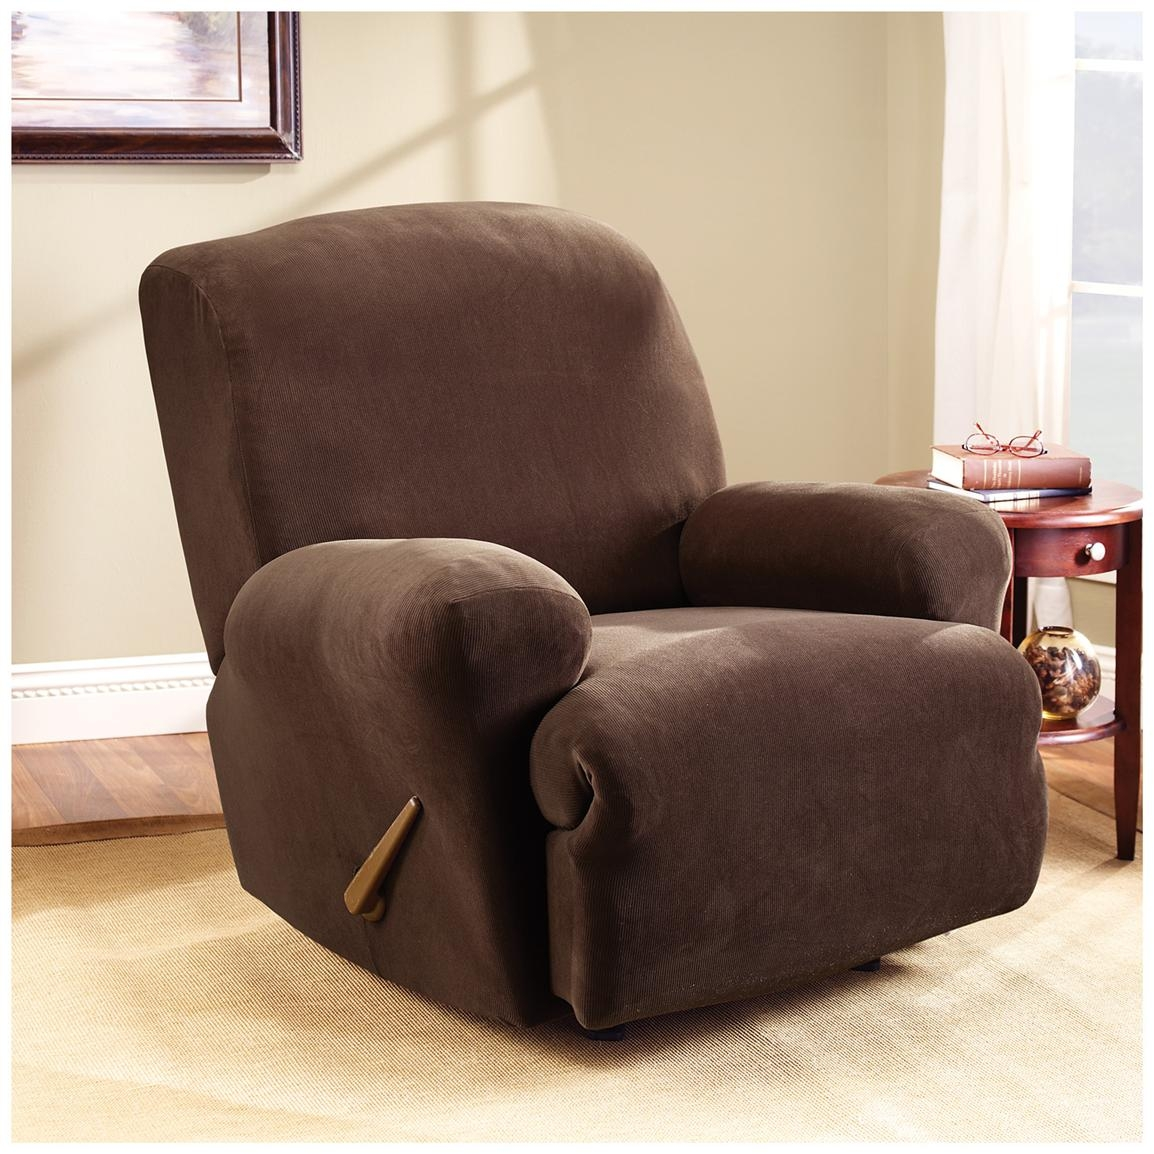 Sofa Recliner Sure Fit Recliner Covers For Easy Stretch And With Sofa And Chair Covers (Image 10 of 15)